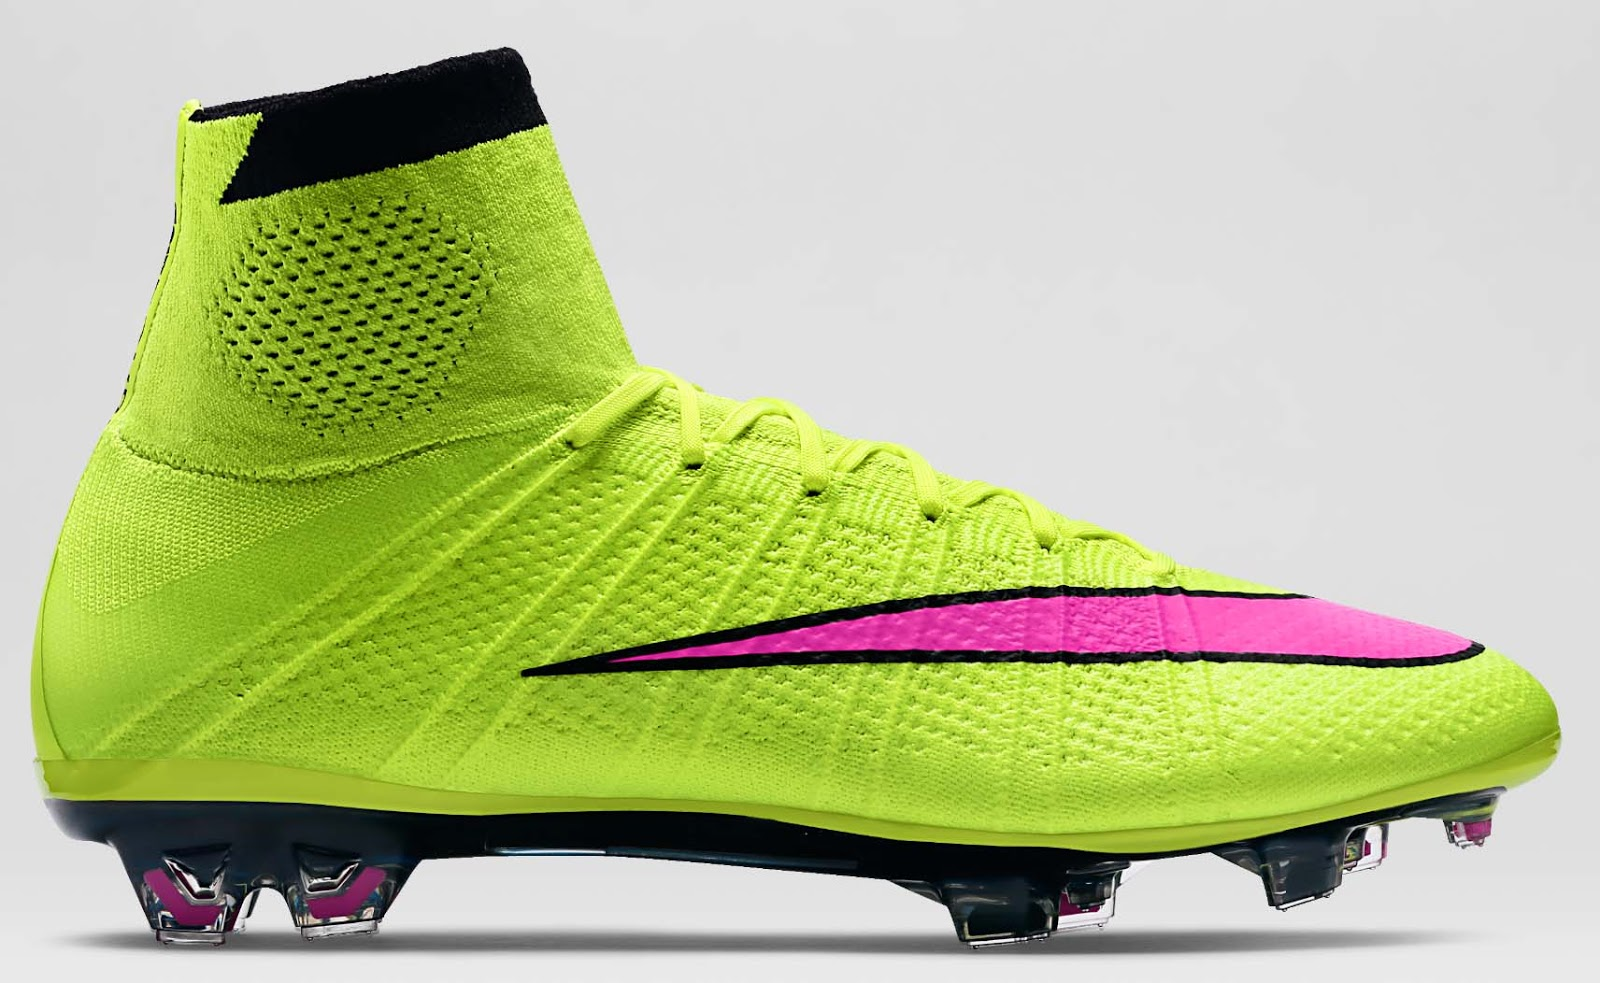 adidas f50 volt nike mercurial superfly 2015 boot released. Black Bedroom Furniture Sets. Home Design Ideas